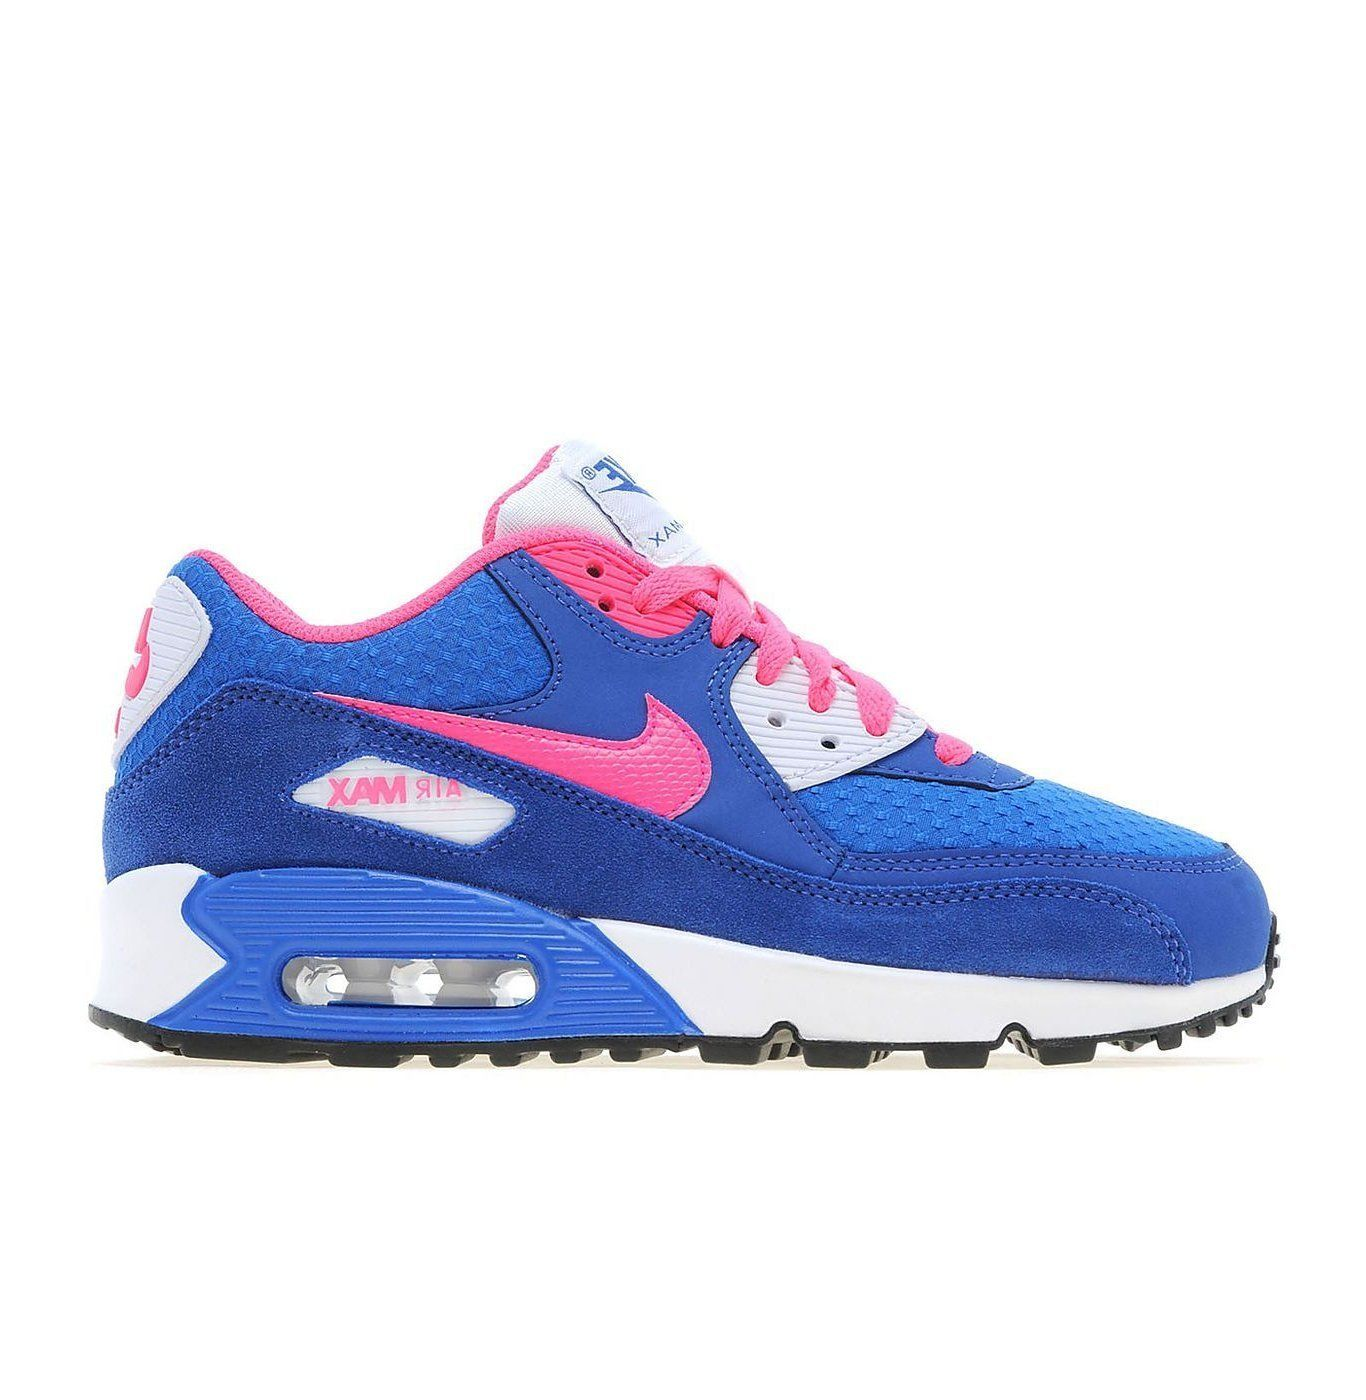 san francisco 66f34 61dc4 Women s Nike Air Max 90 for only  95 + Free Shipping in USA and Canada